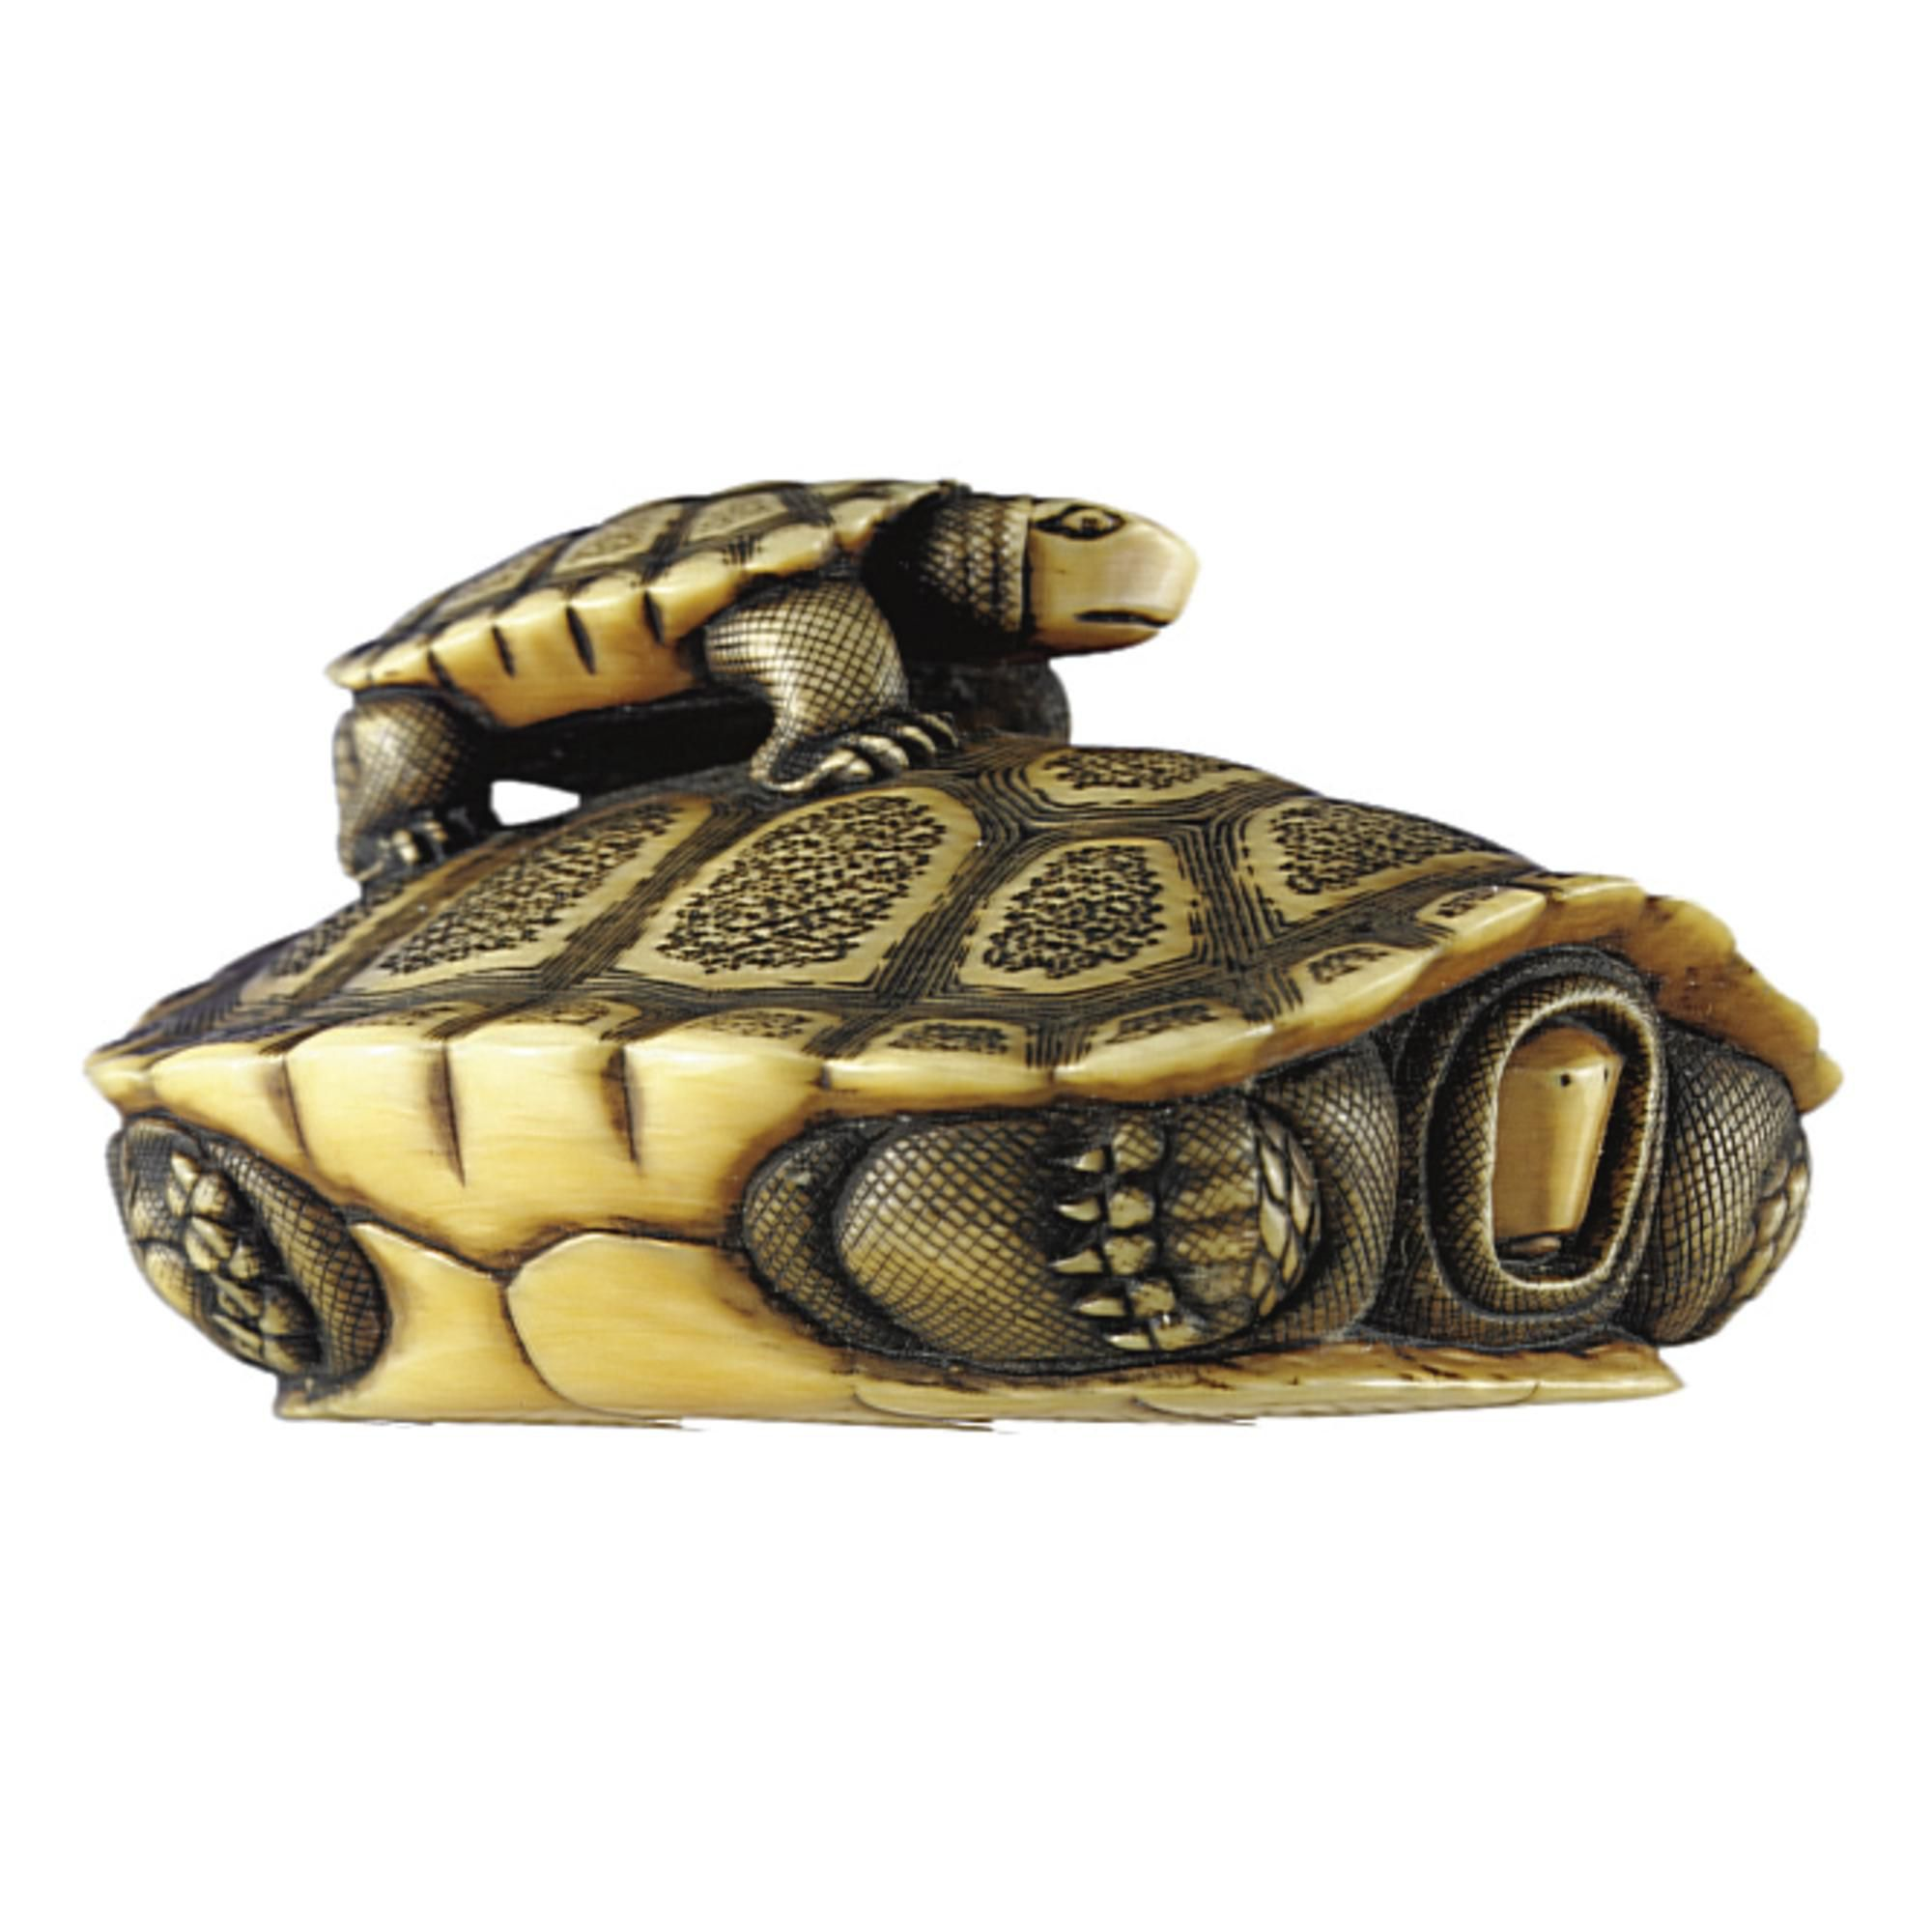 An ivory Group of a turtle and young by Ohara Mitsusada, Osaka, 19th century | Lot | Sotheby's